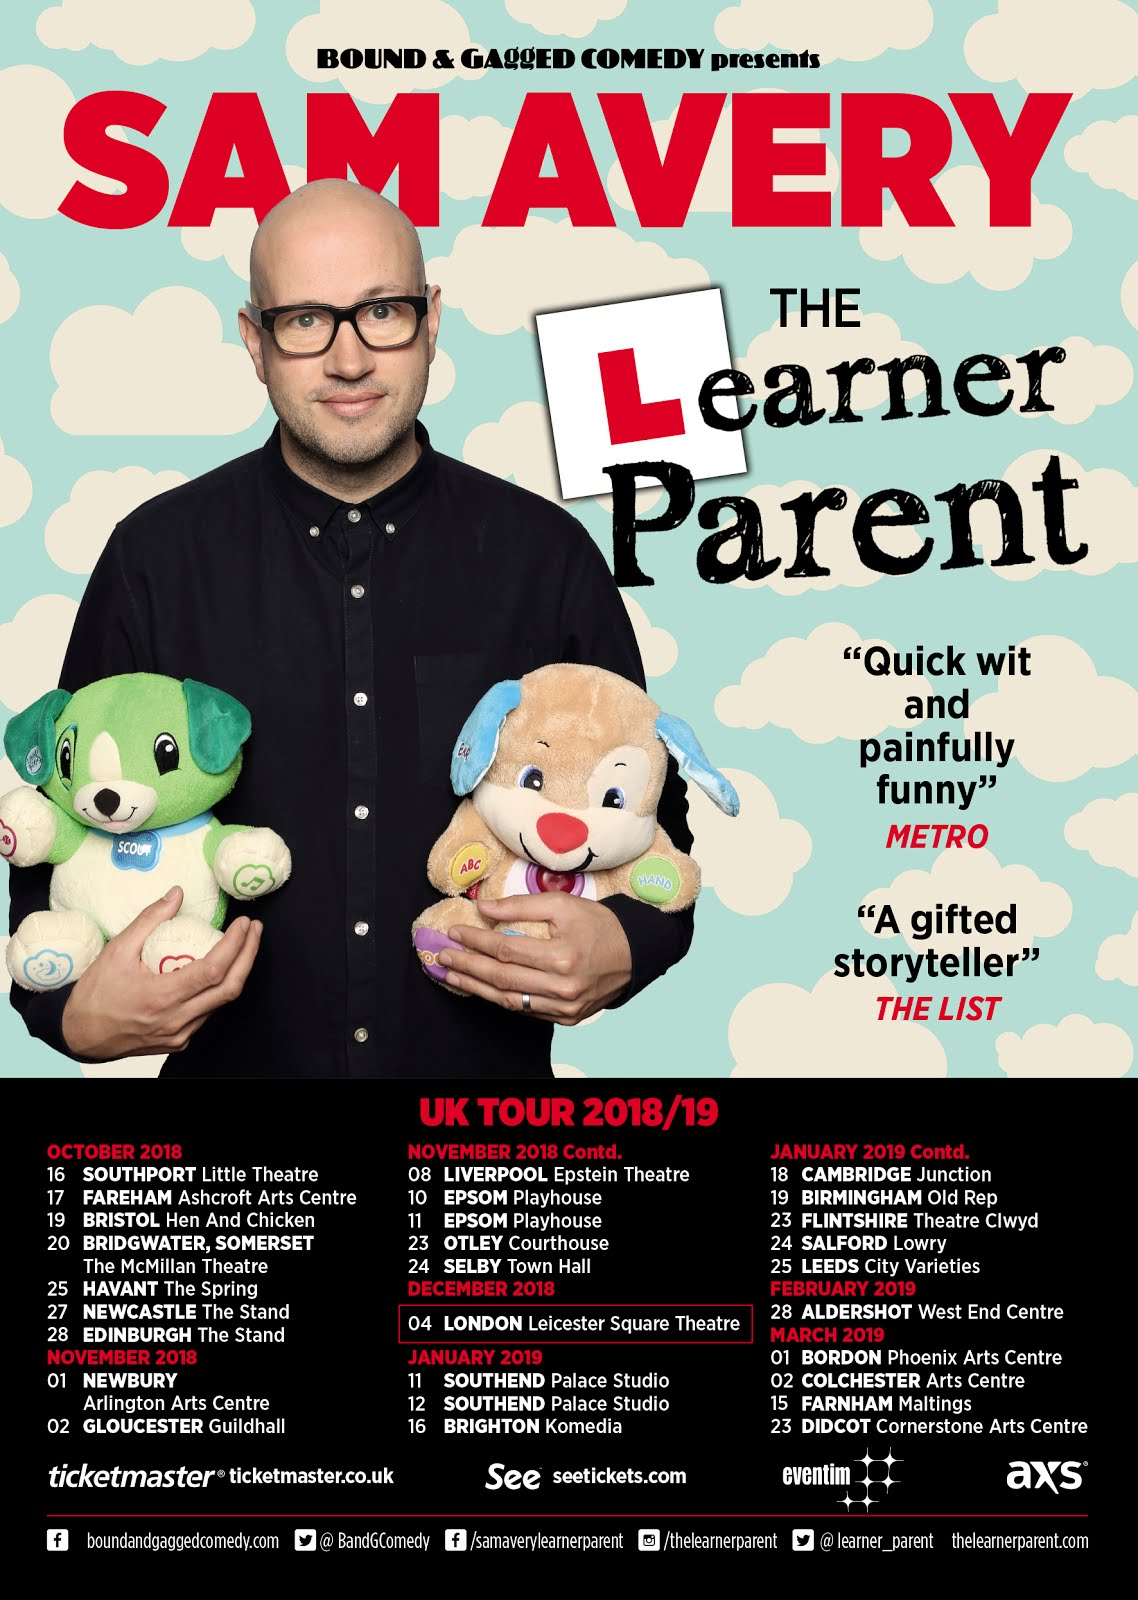 UK Tour 2018 / 19 - Click for dates